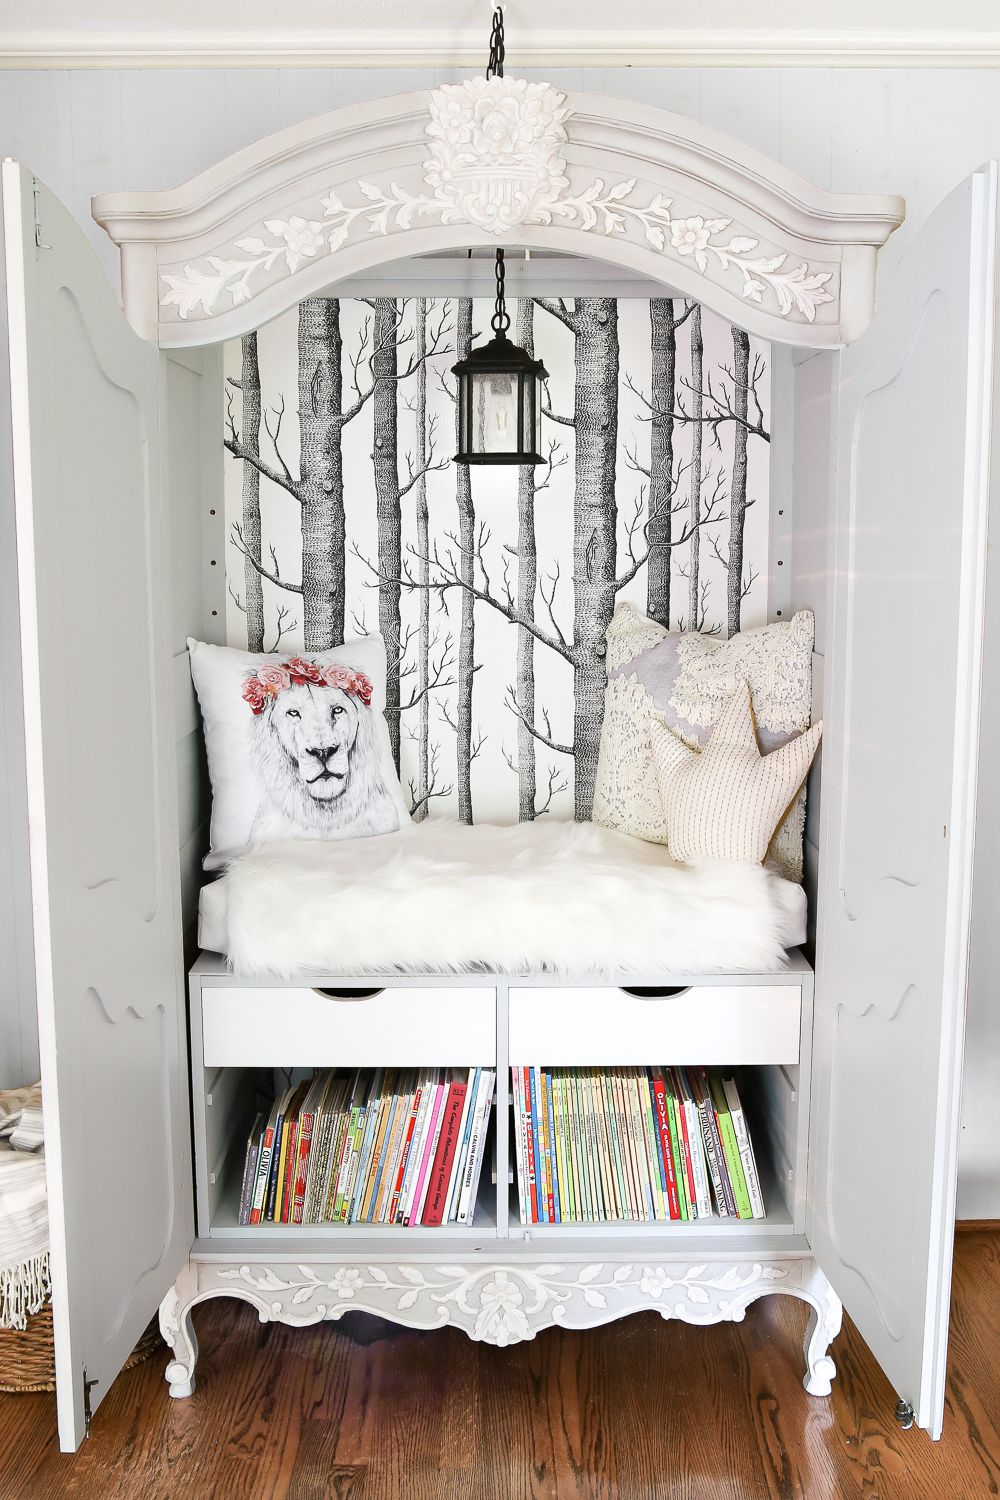 Diy Narnia Wardrobe Reading Nook  Blesserhouse  A Plain, Thrifted  Armoire Gets A Sweet, Fairytalelike Makeover As A Reading Nook Based On  The Story